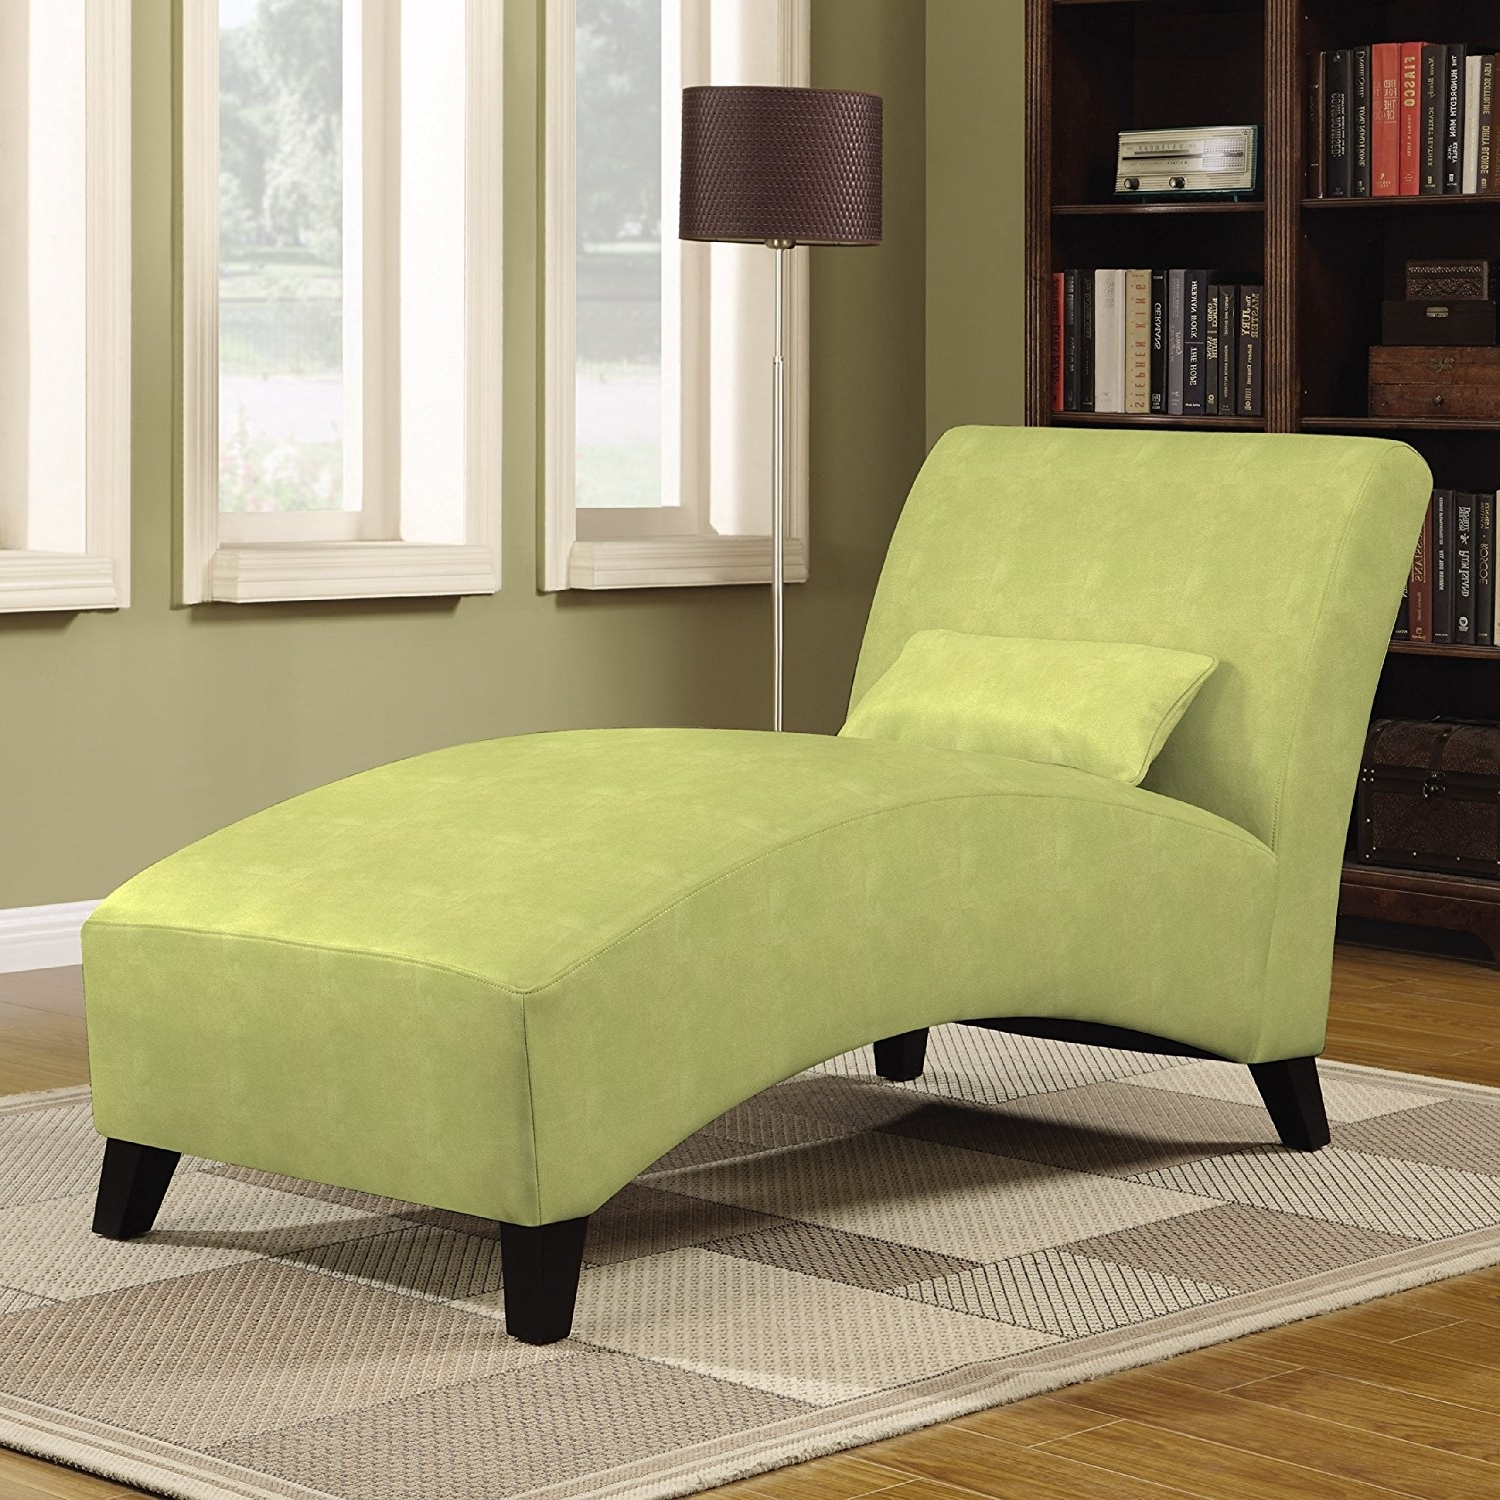 Amazon: Handy Living Chaise Lounge Chair, Gecko Green: Kitchen Regarding Most Up To Date Curved Chaise Lounges (View 2 of 15)